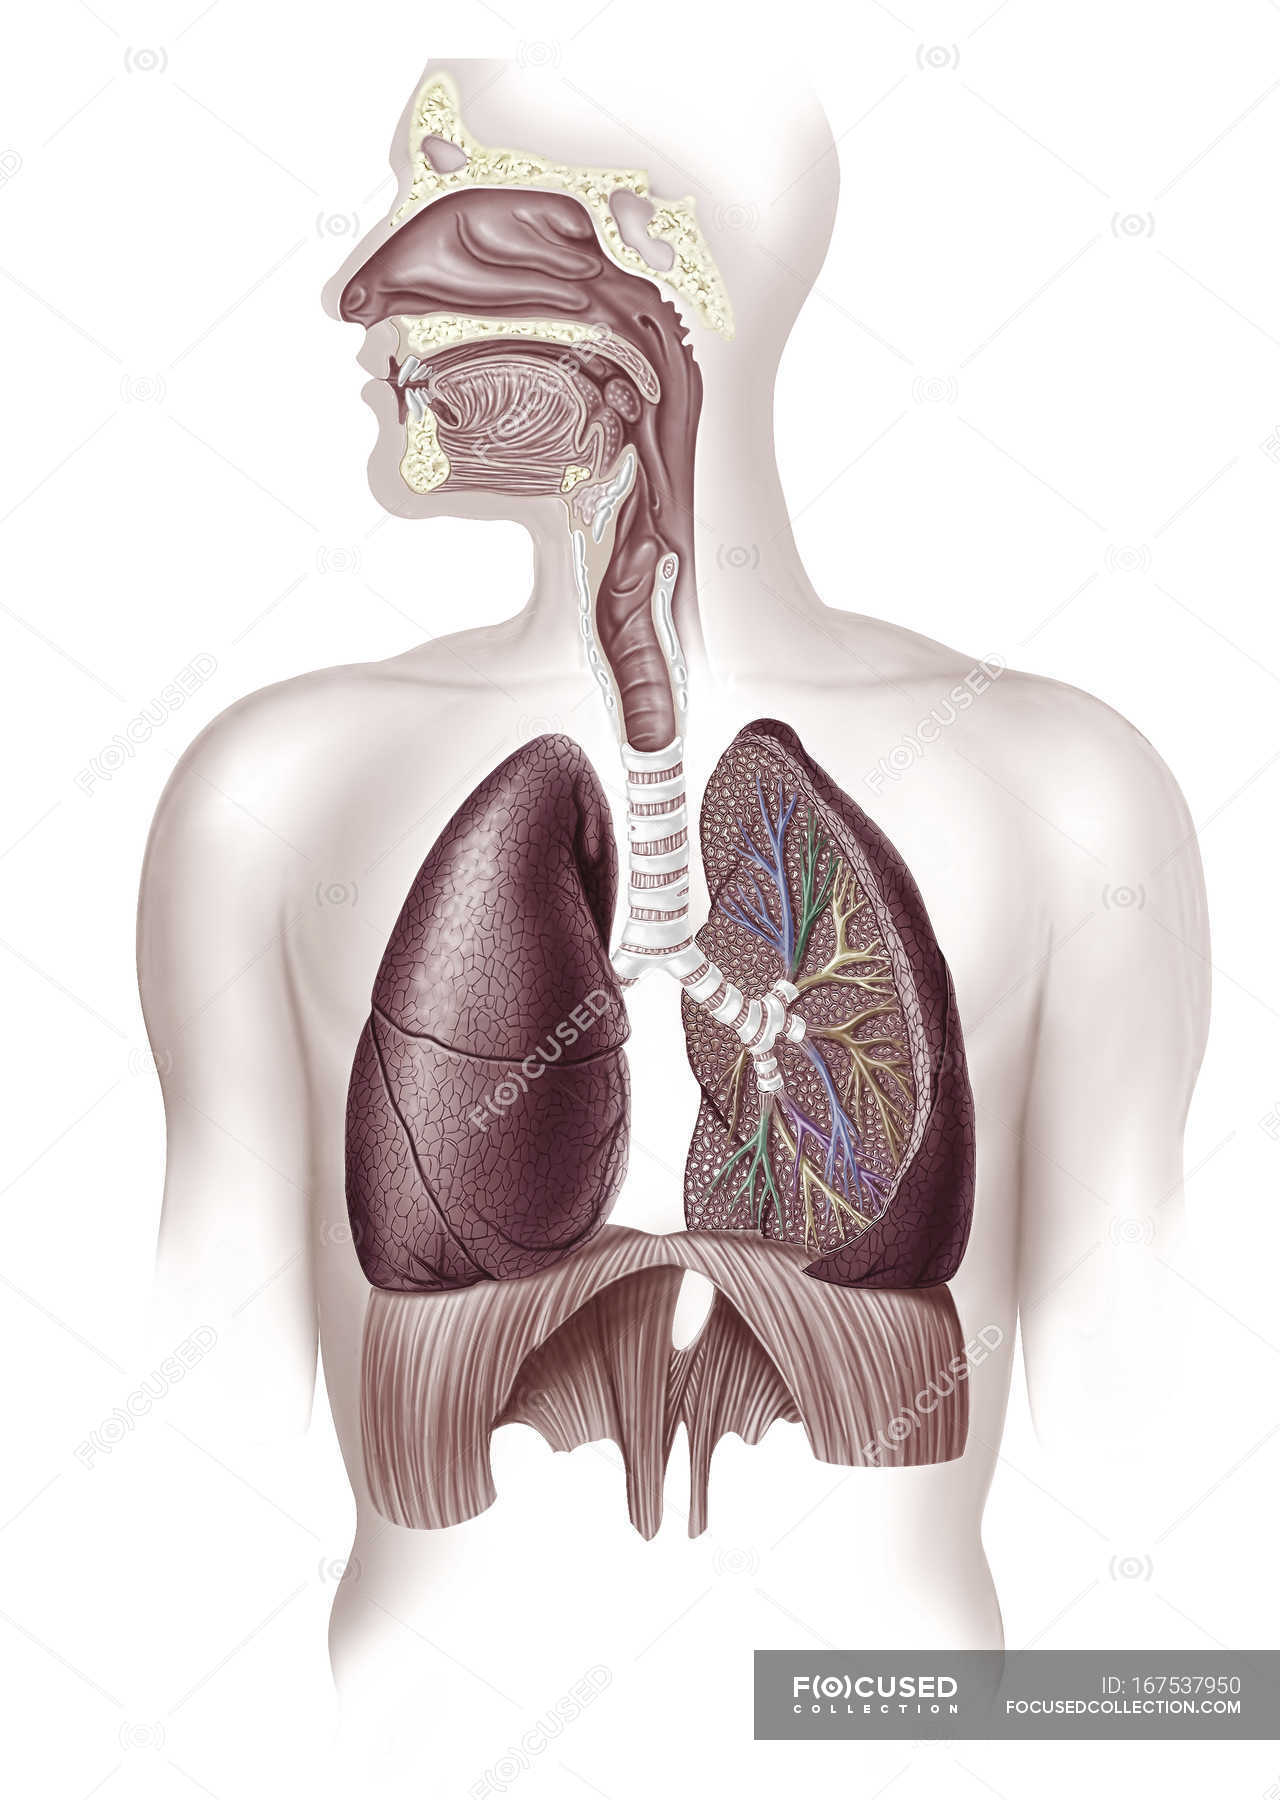 Human Lungs Anatomy In Cross Section Illustration White View